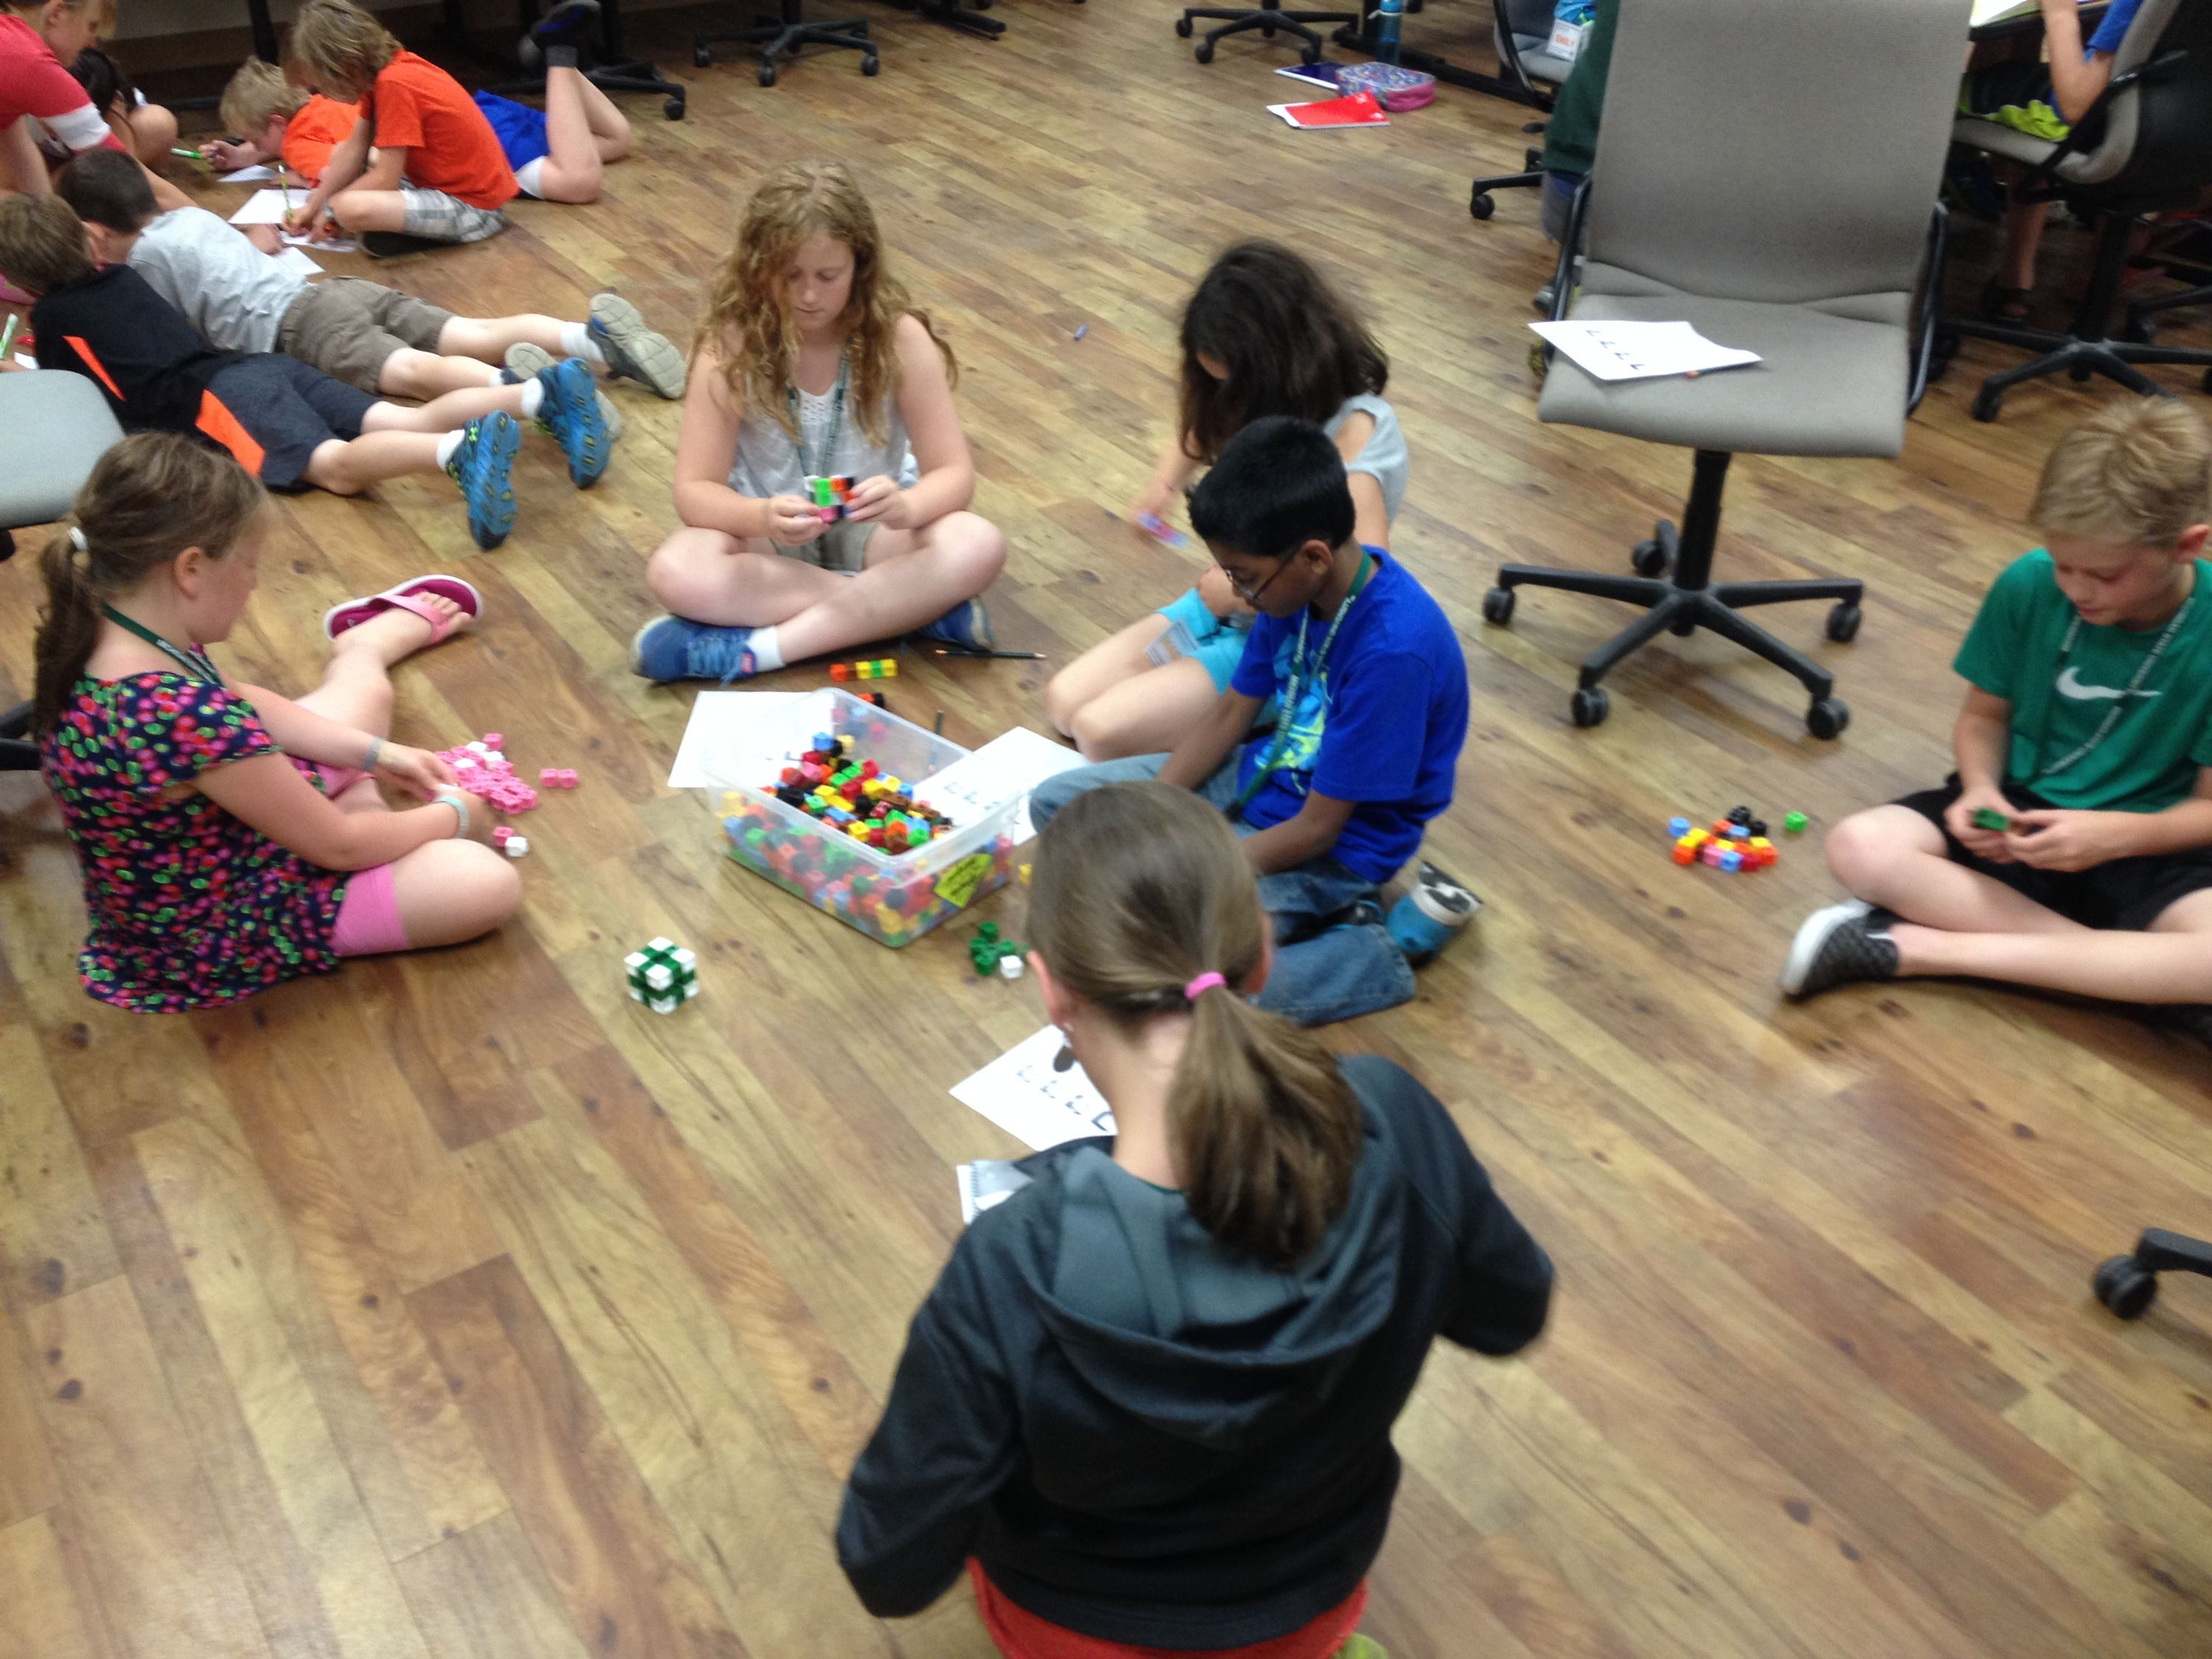 students sitting on the floor putting block pieces together